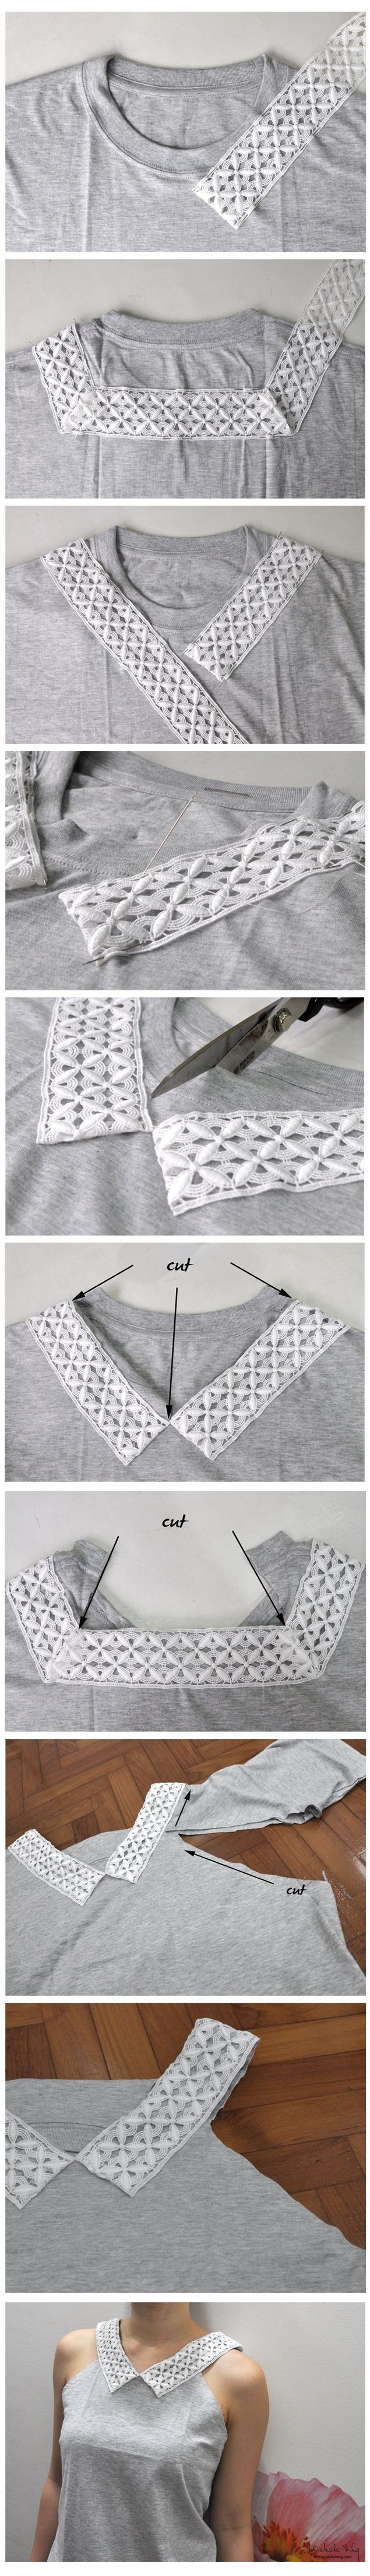 16 Best DIY Fashion Ideas Ever: UNBELIVABLE THIS WAS MADO FROM A BASIC NOT TOO COOL T-SHIRT!/ TOP HECHO A PARTIR DE UNA REMERA BÁSICA ¡NO LO PODRÁN CREER!